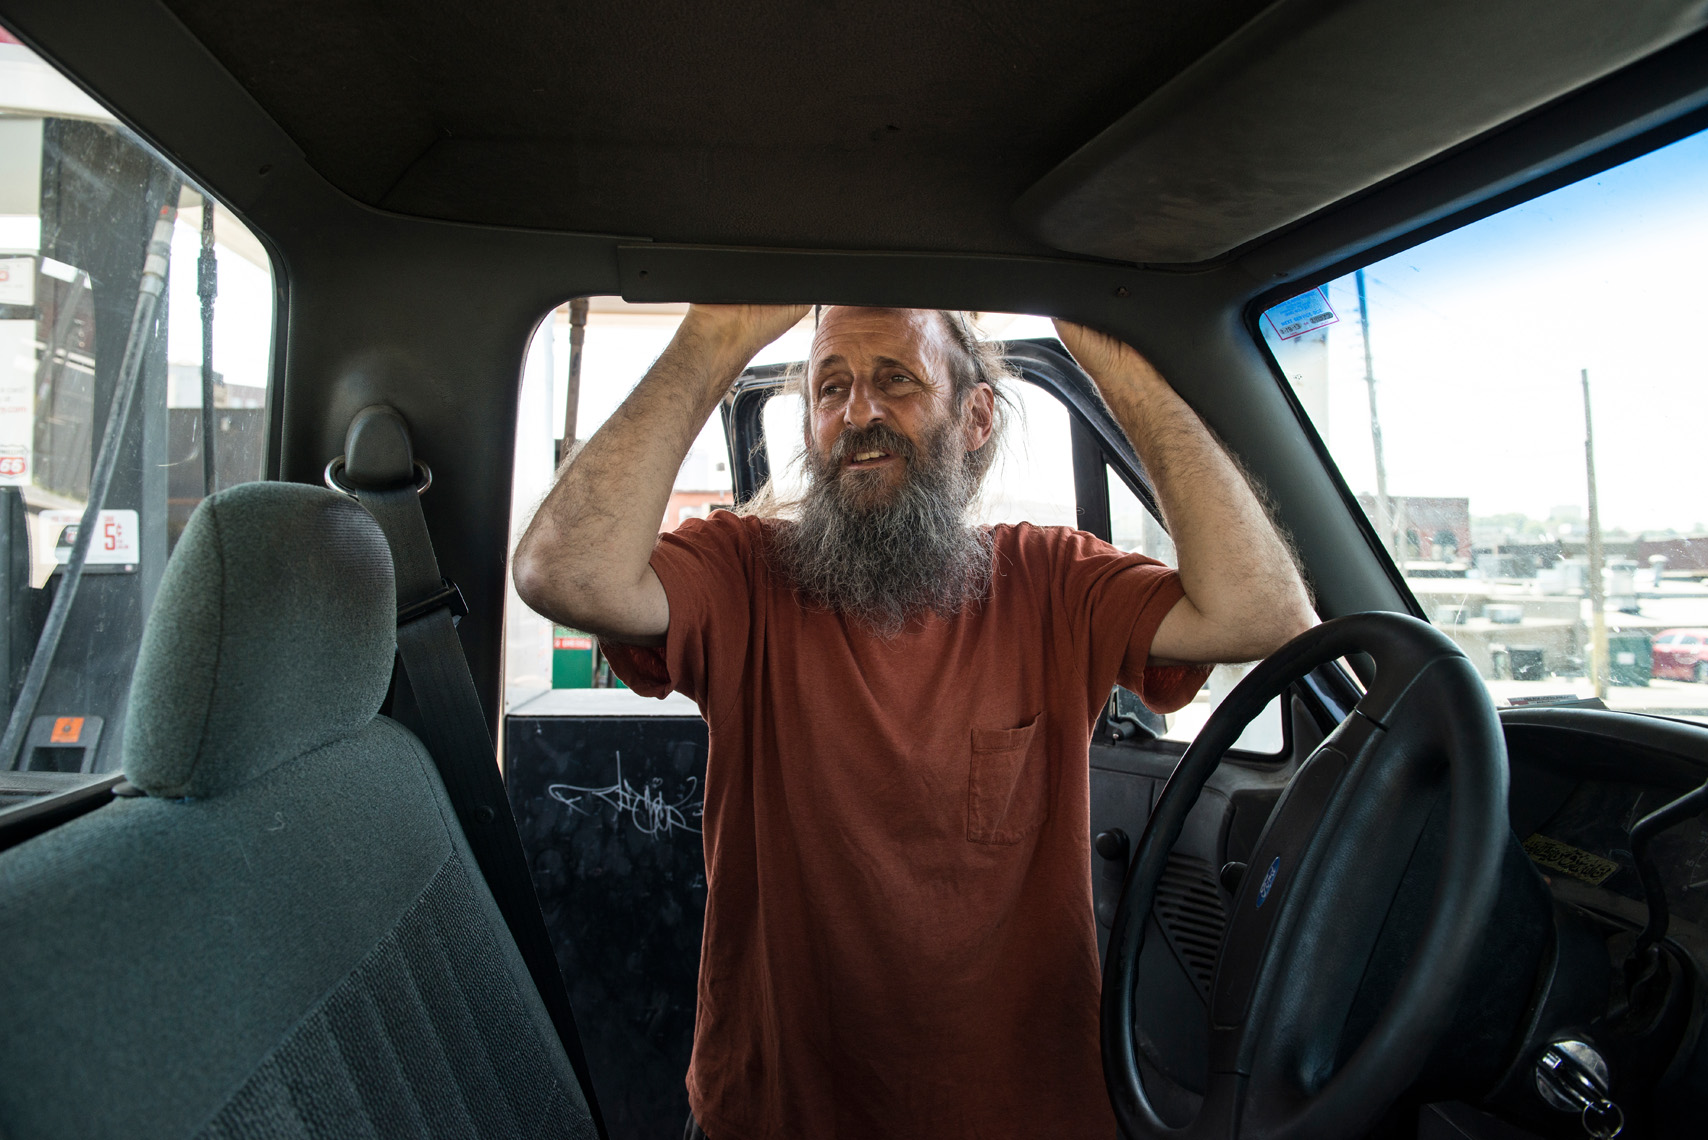 Adam Jones, bearded man with truck portrait